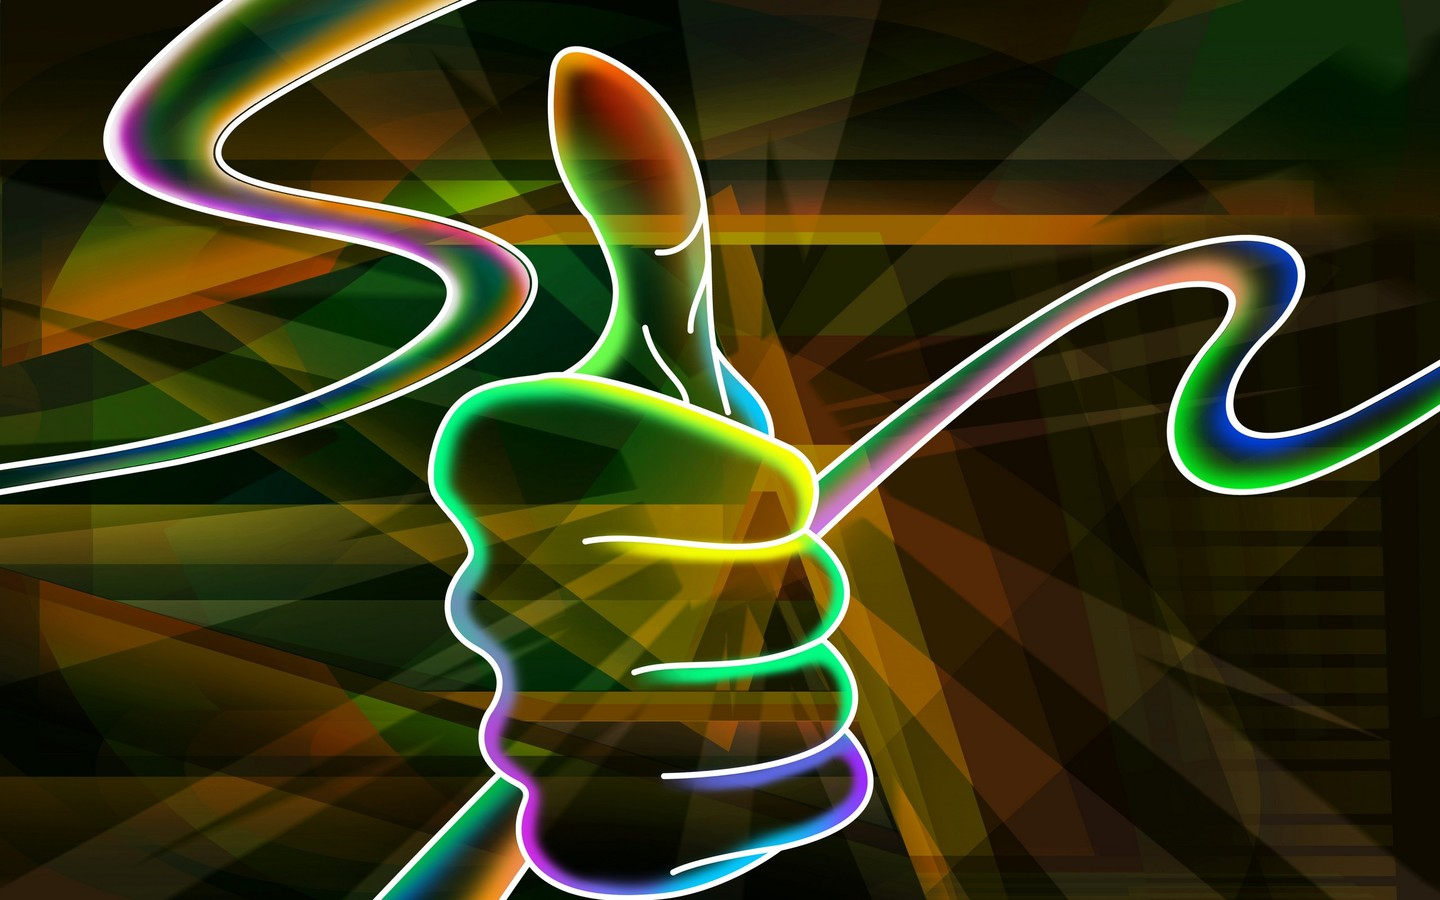 Cool Neon Dragon Backgrounds wallpaper Cool Neon Dragon Backgrounds 1440x900